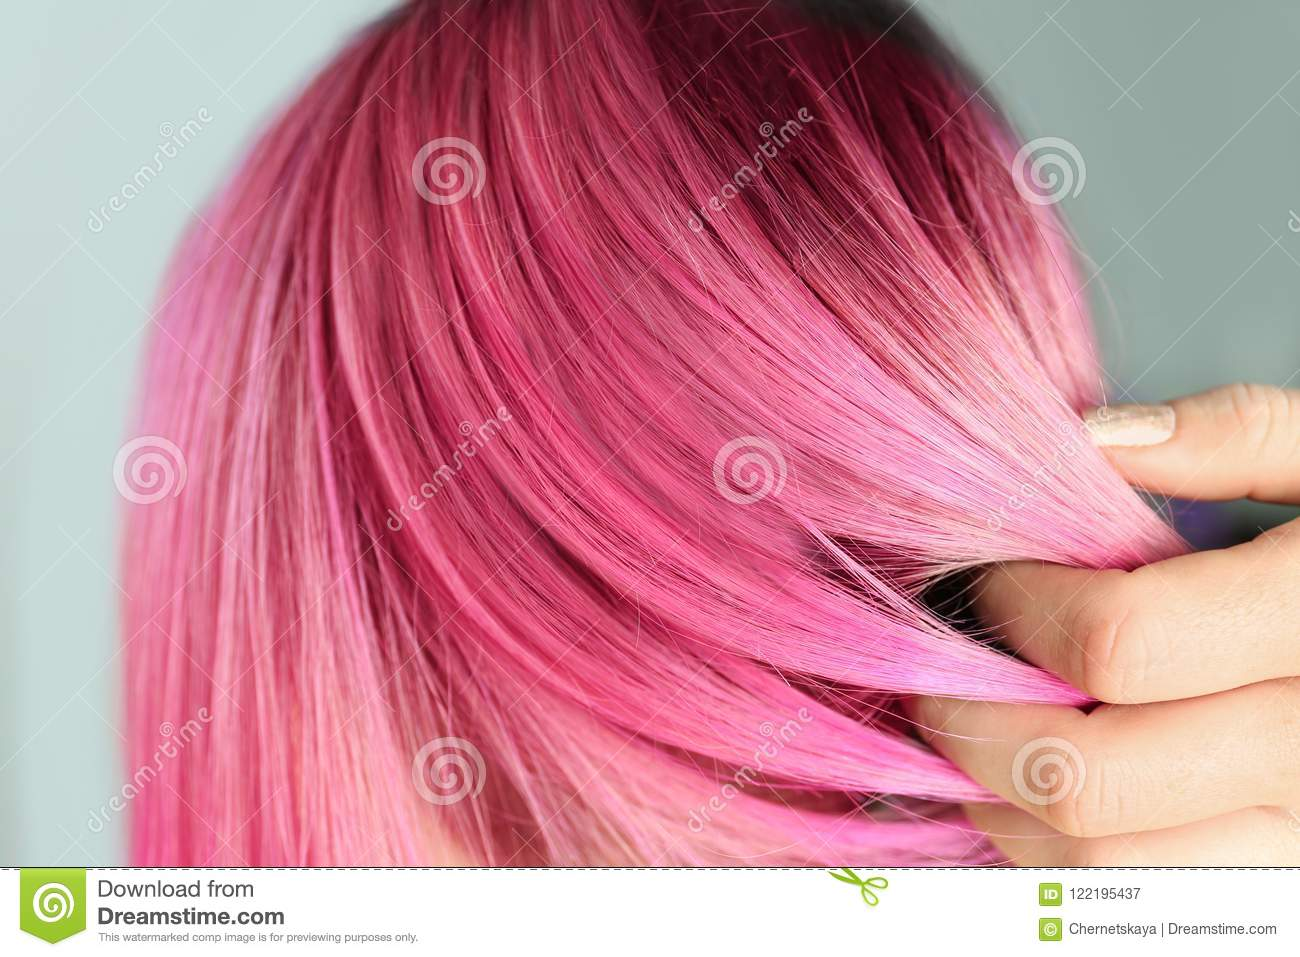 Woman with color dyed hair, close up view.